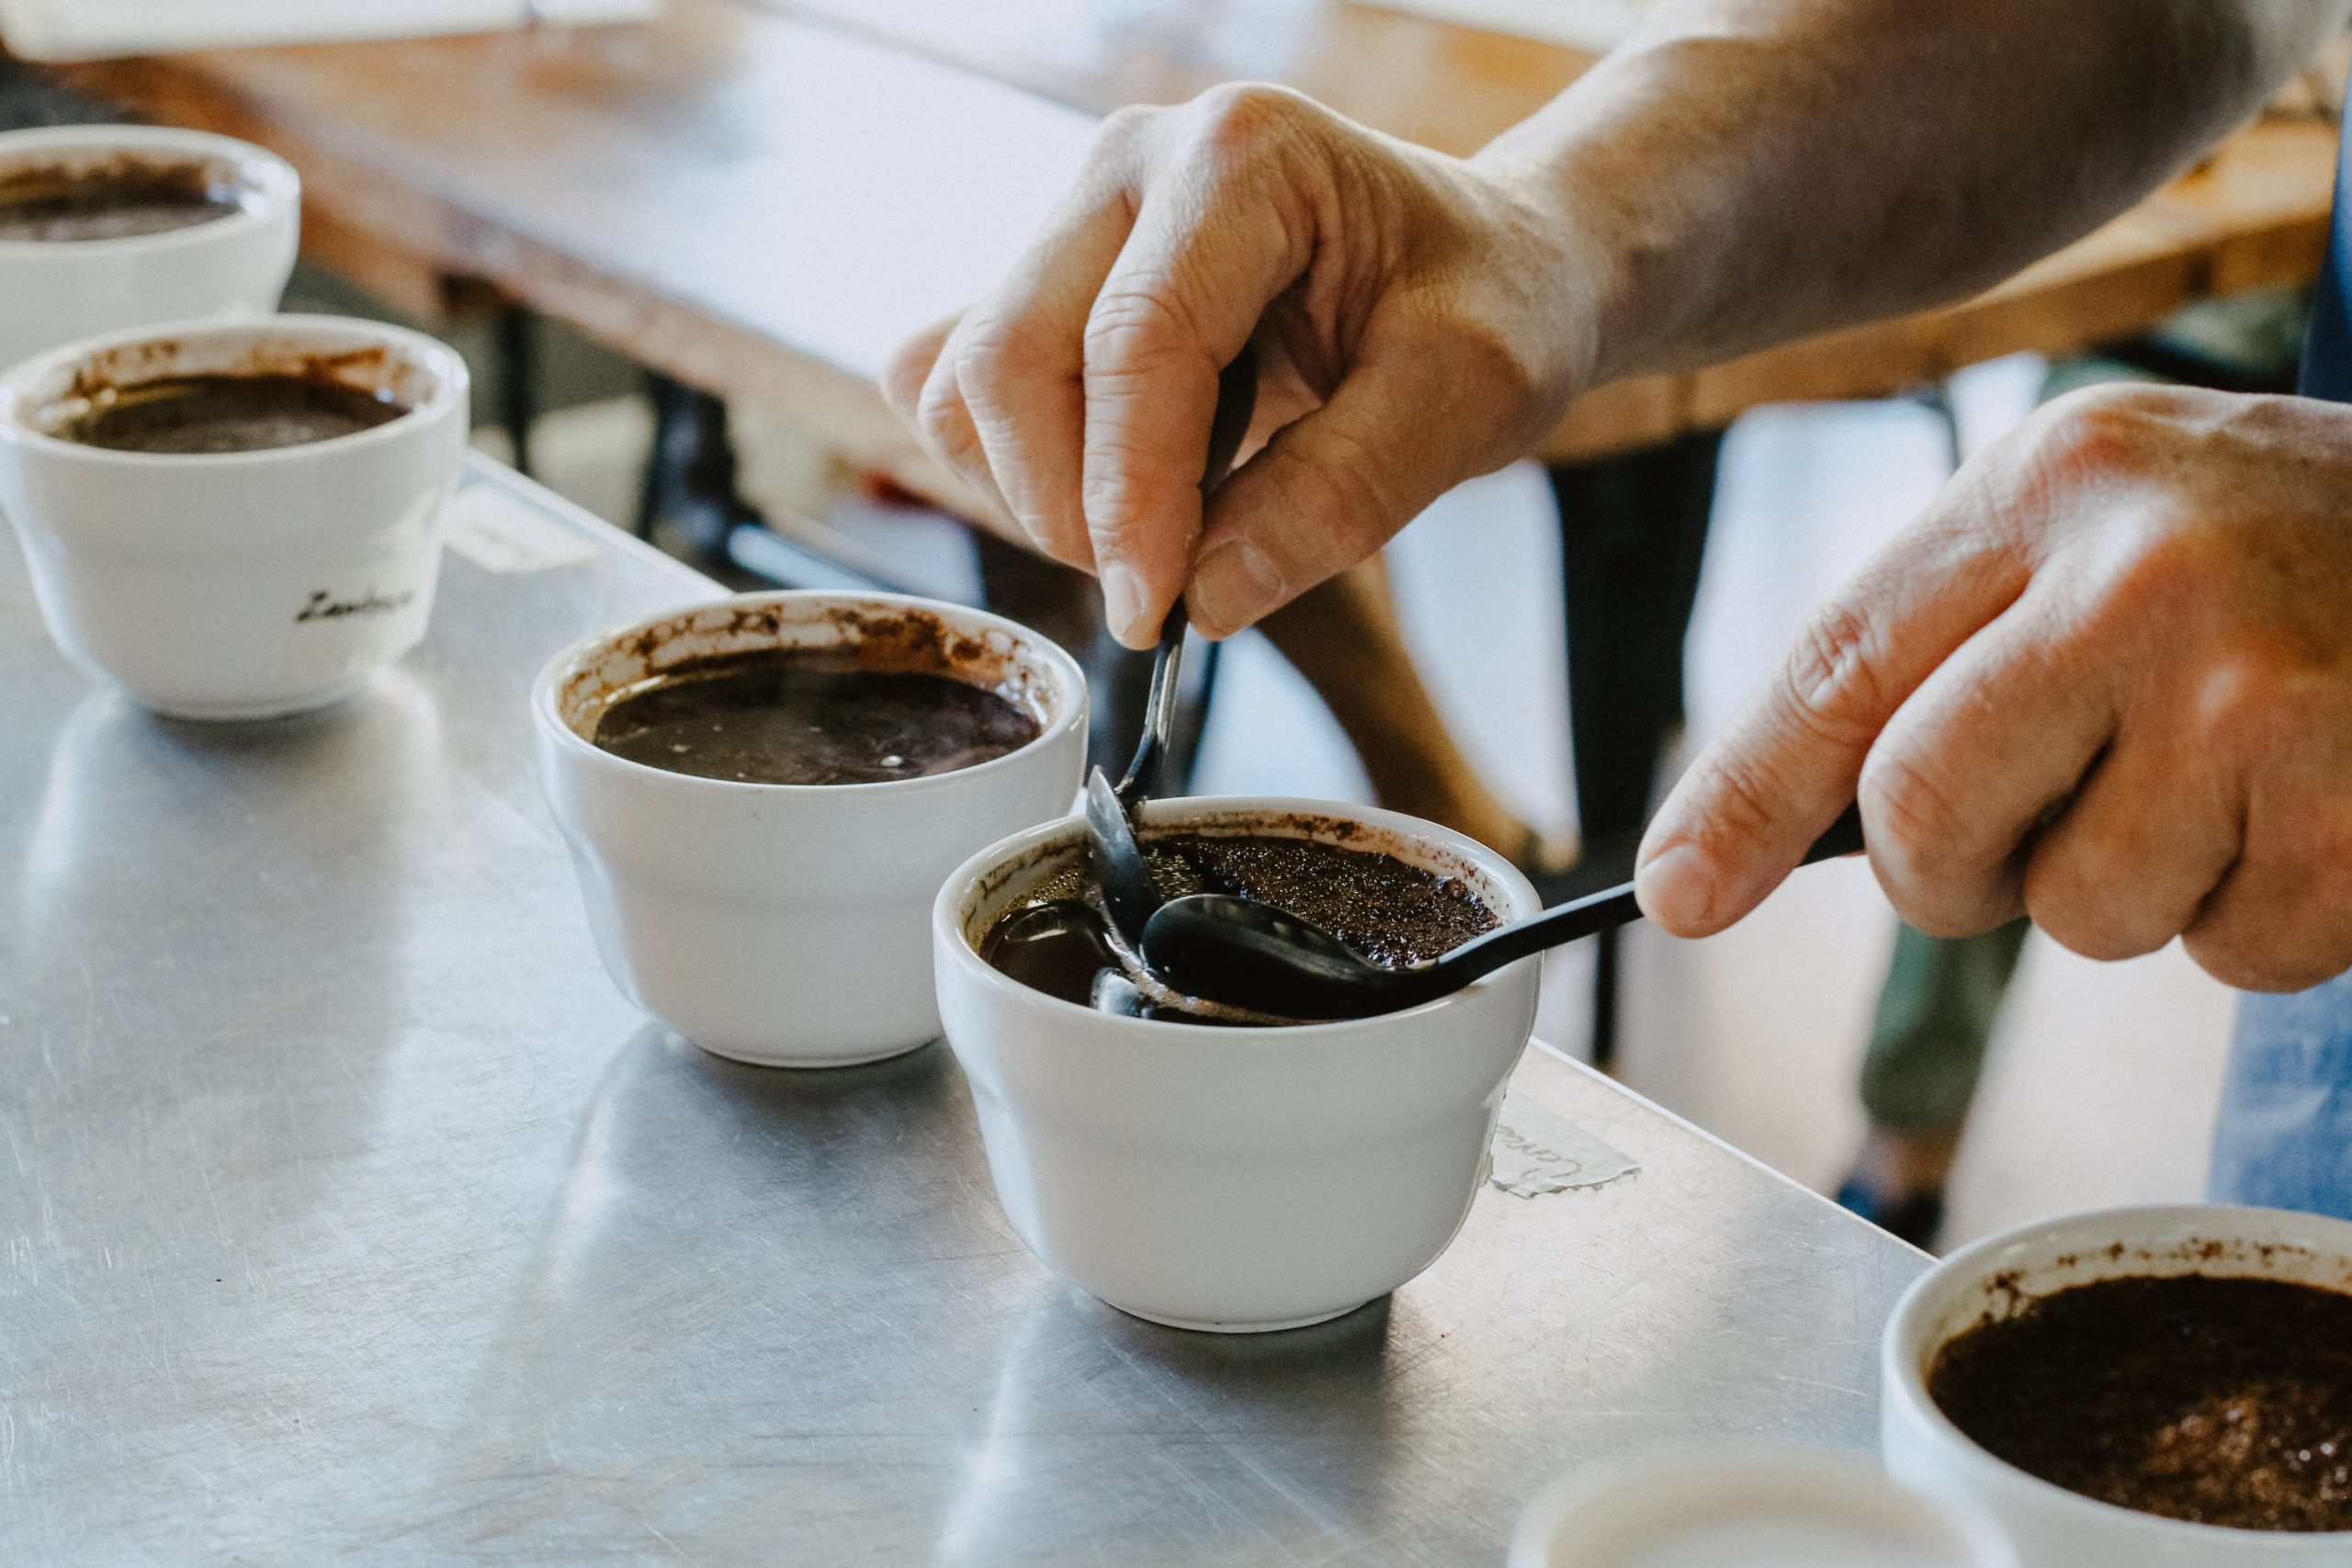 a person carrying out a coffee cupping session